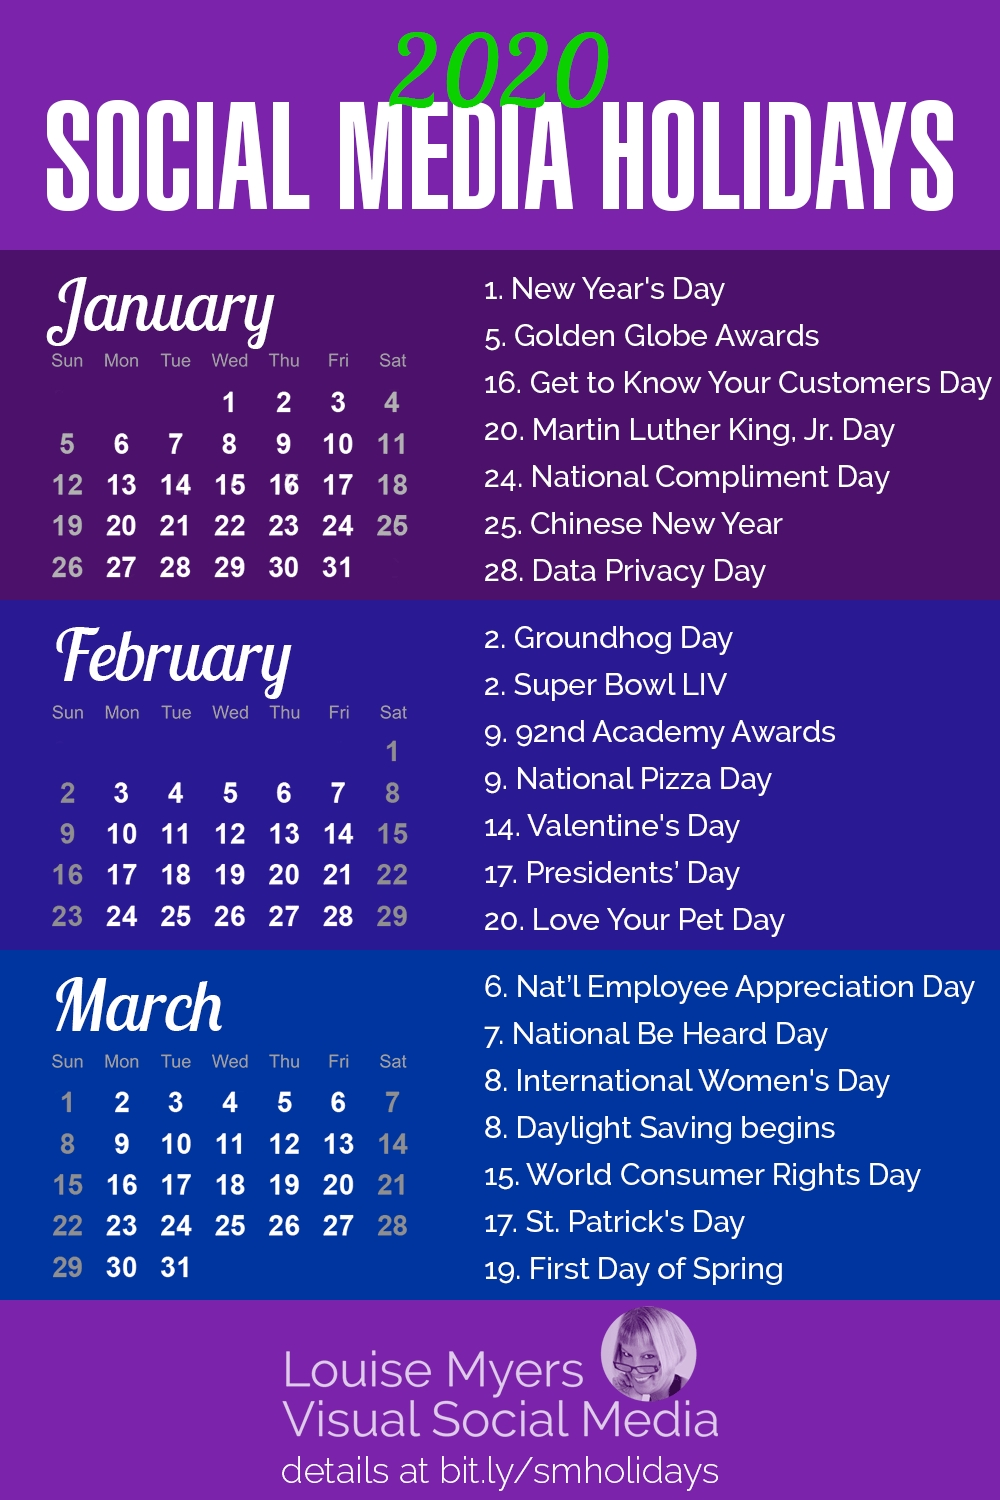 84 Social Media Holidays You Need In 2020: Indispensable! in Special Days In 2020 Calendar